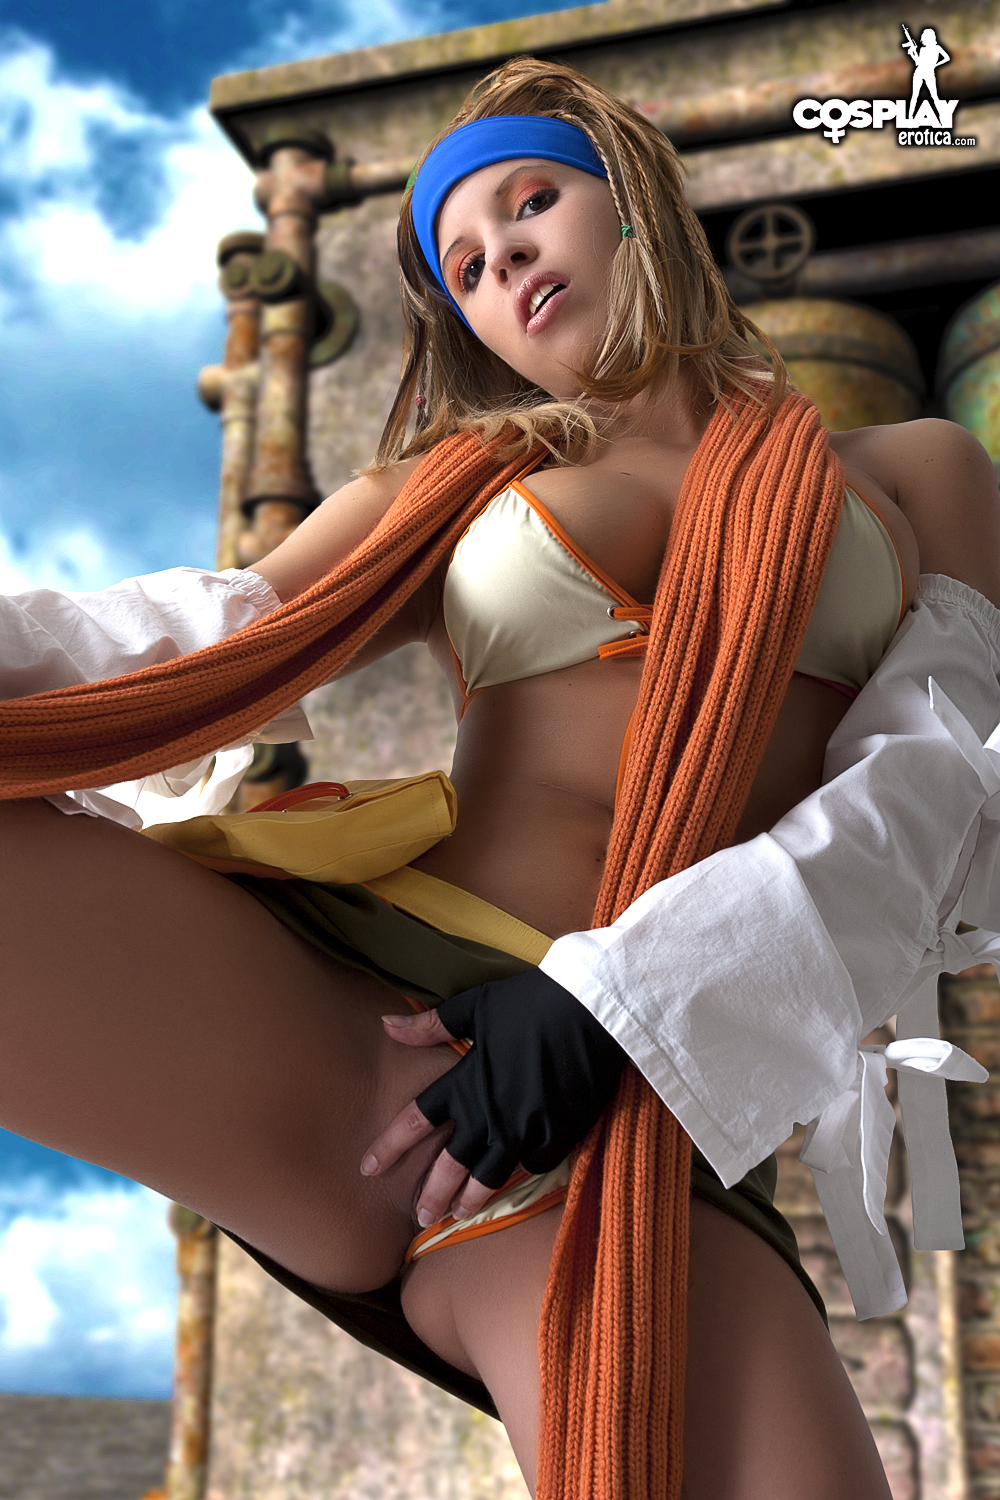 free nude pics of final fantasy characters